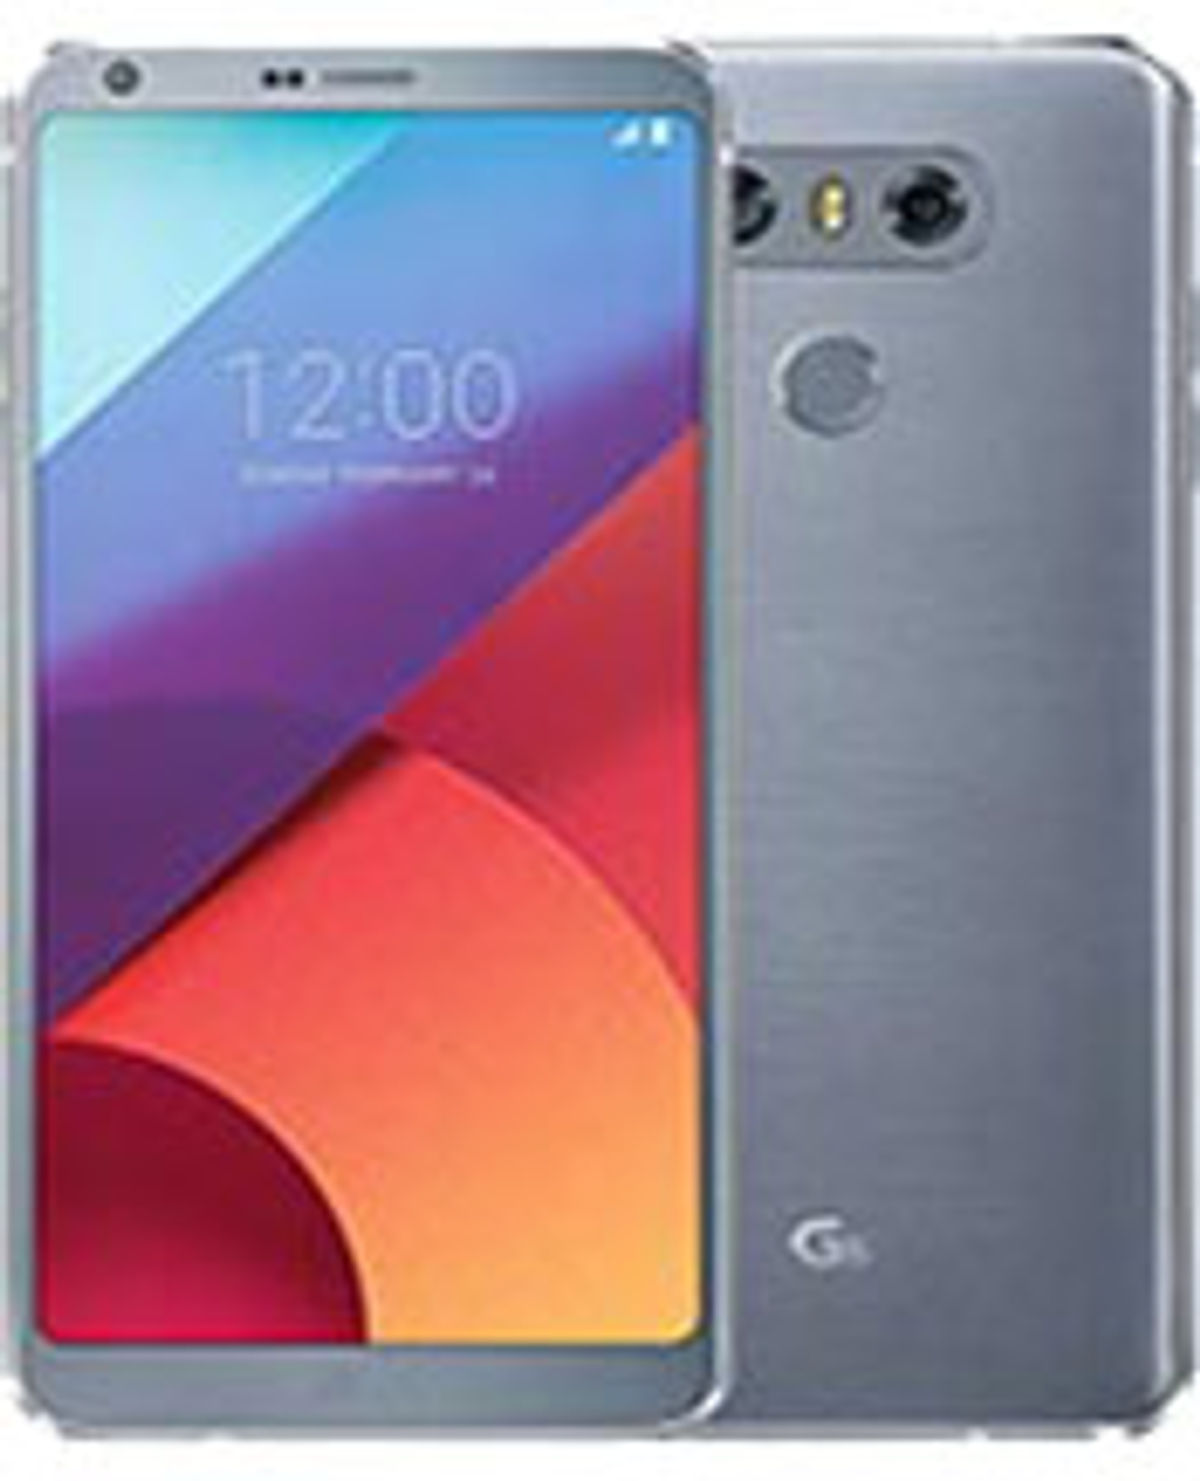 Best LG Android Phones Under 30000 - September 2019 in